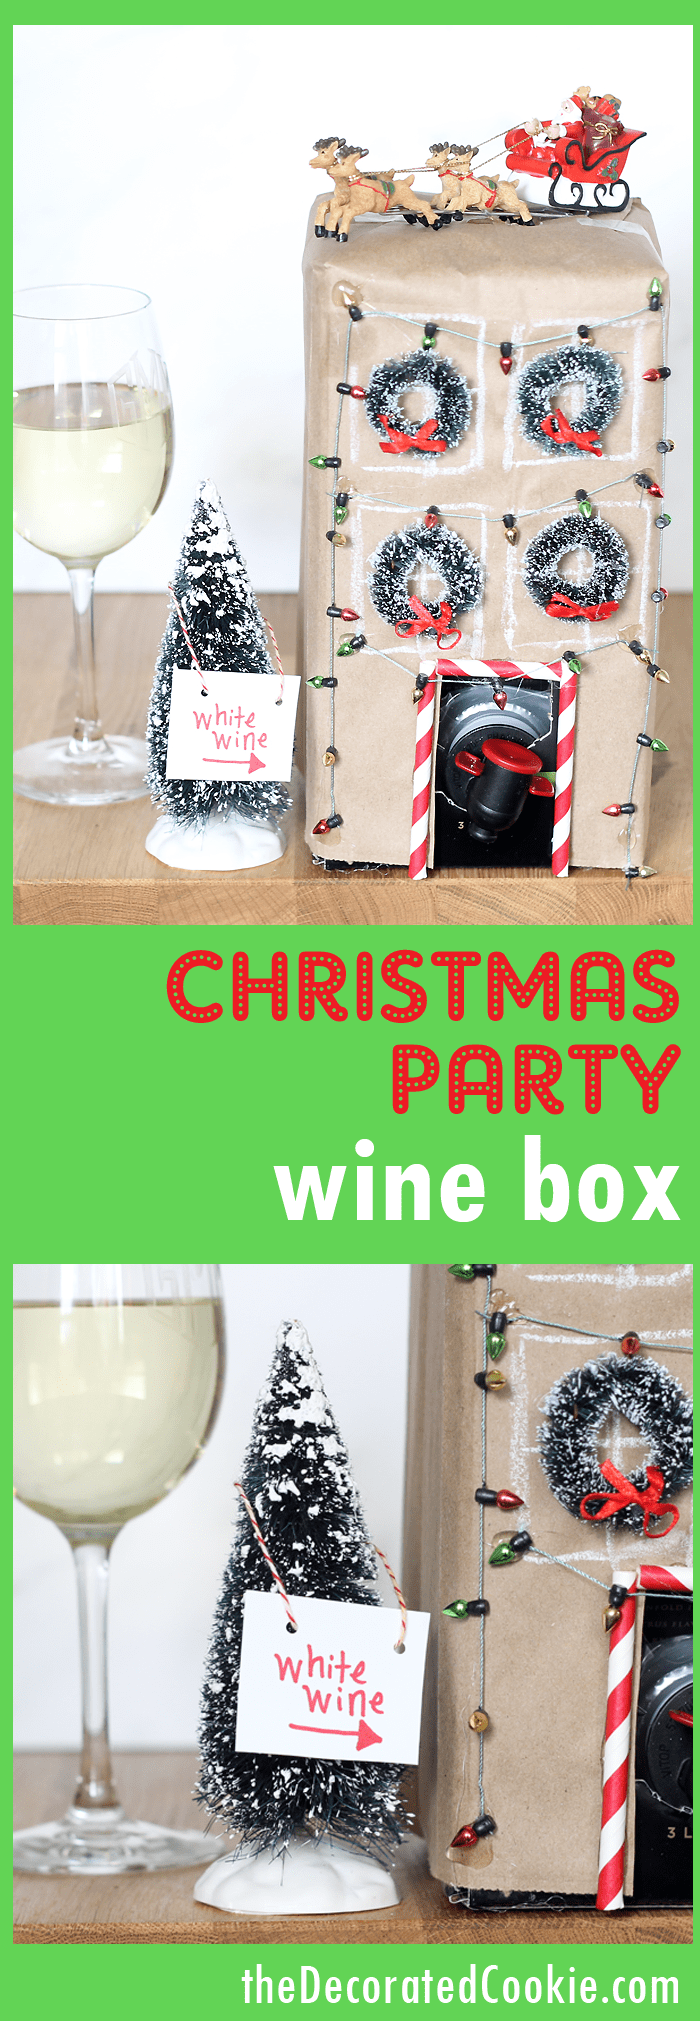 Serve Christmas party boxed wine -- Dress up a box of wine for your Christmas part. Video how-tos included. Easy Christmas party idea.